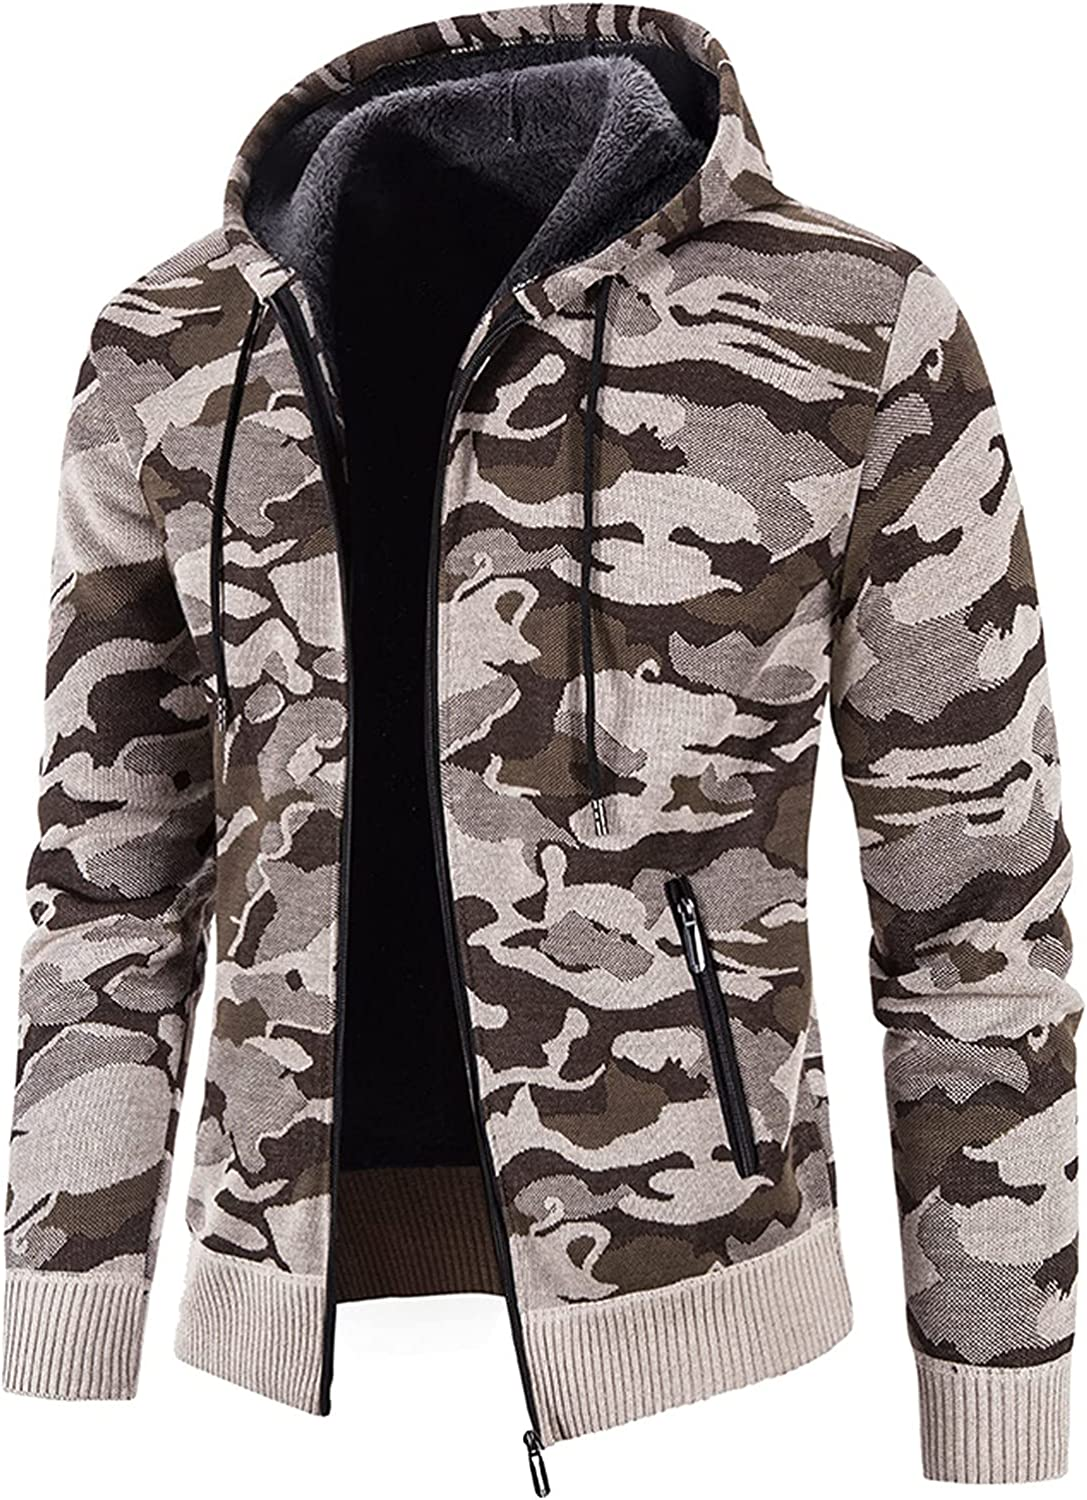 SSDXY Camouflage Hoodies Pullover for Men 2021,Casual Thicken Fleece Active Cardigan Jacket Zipper Hooded Coats Outwear